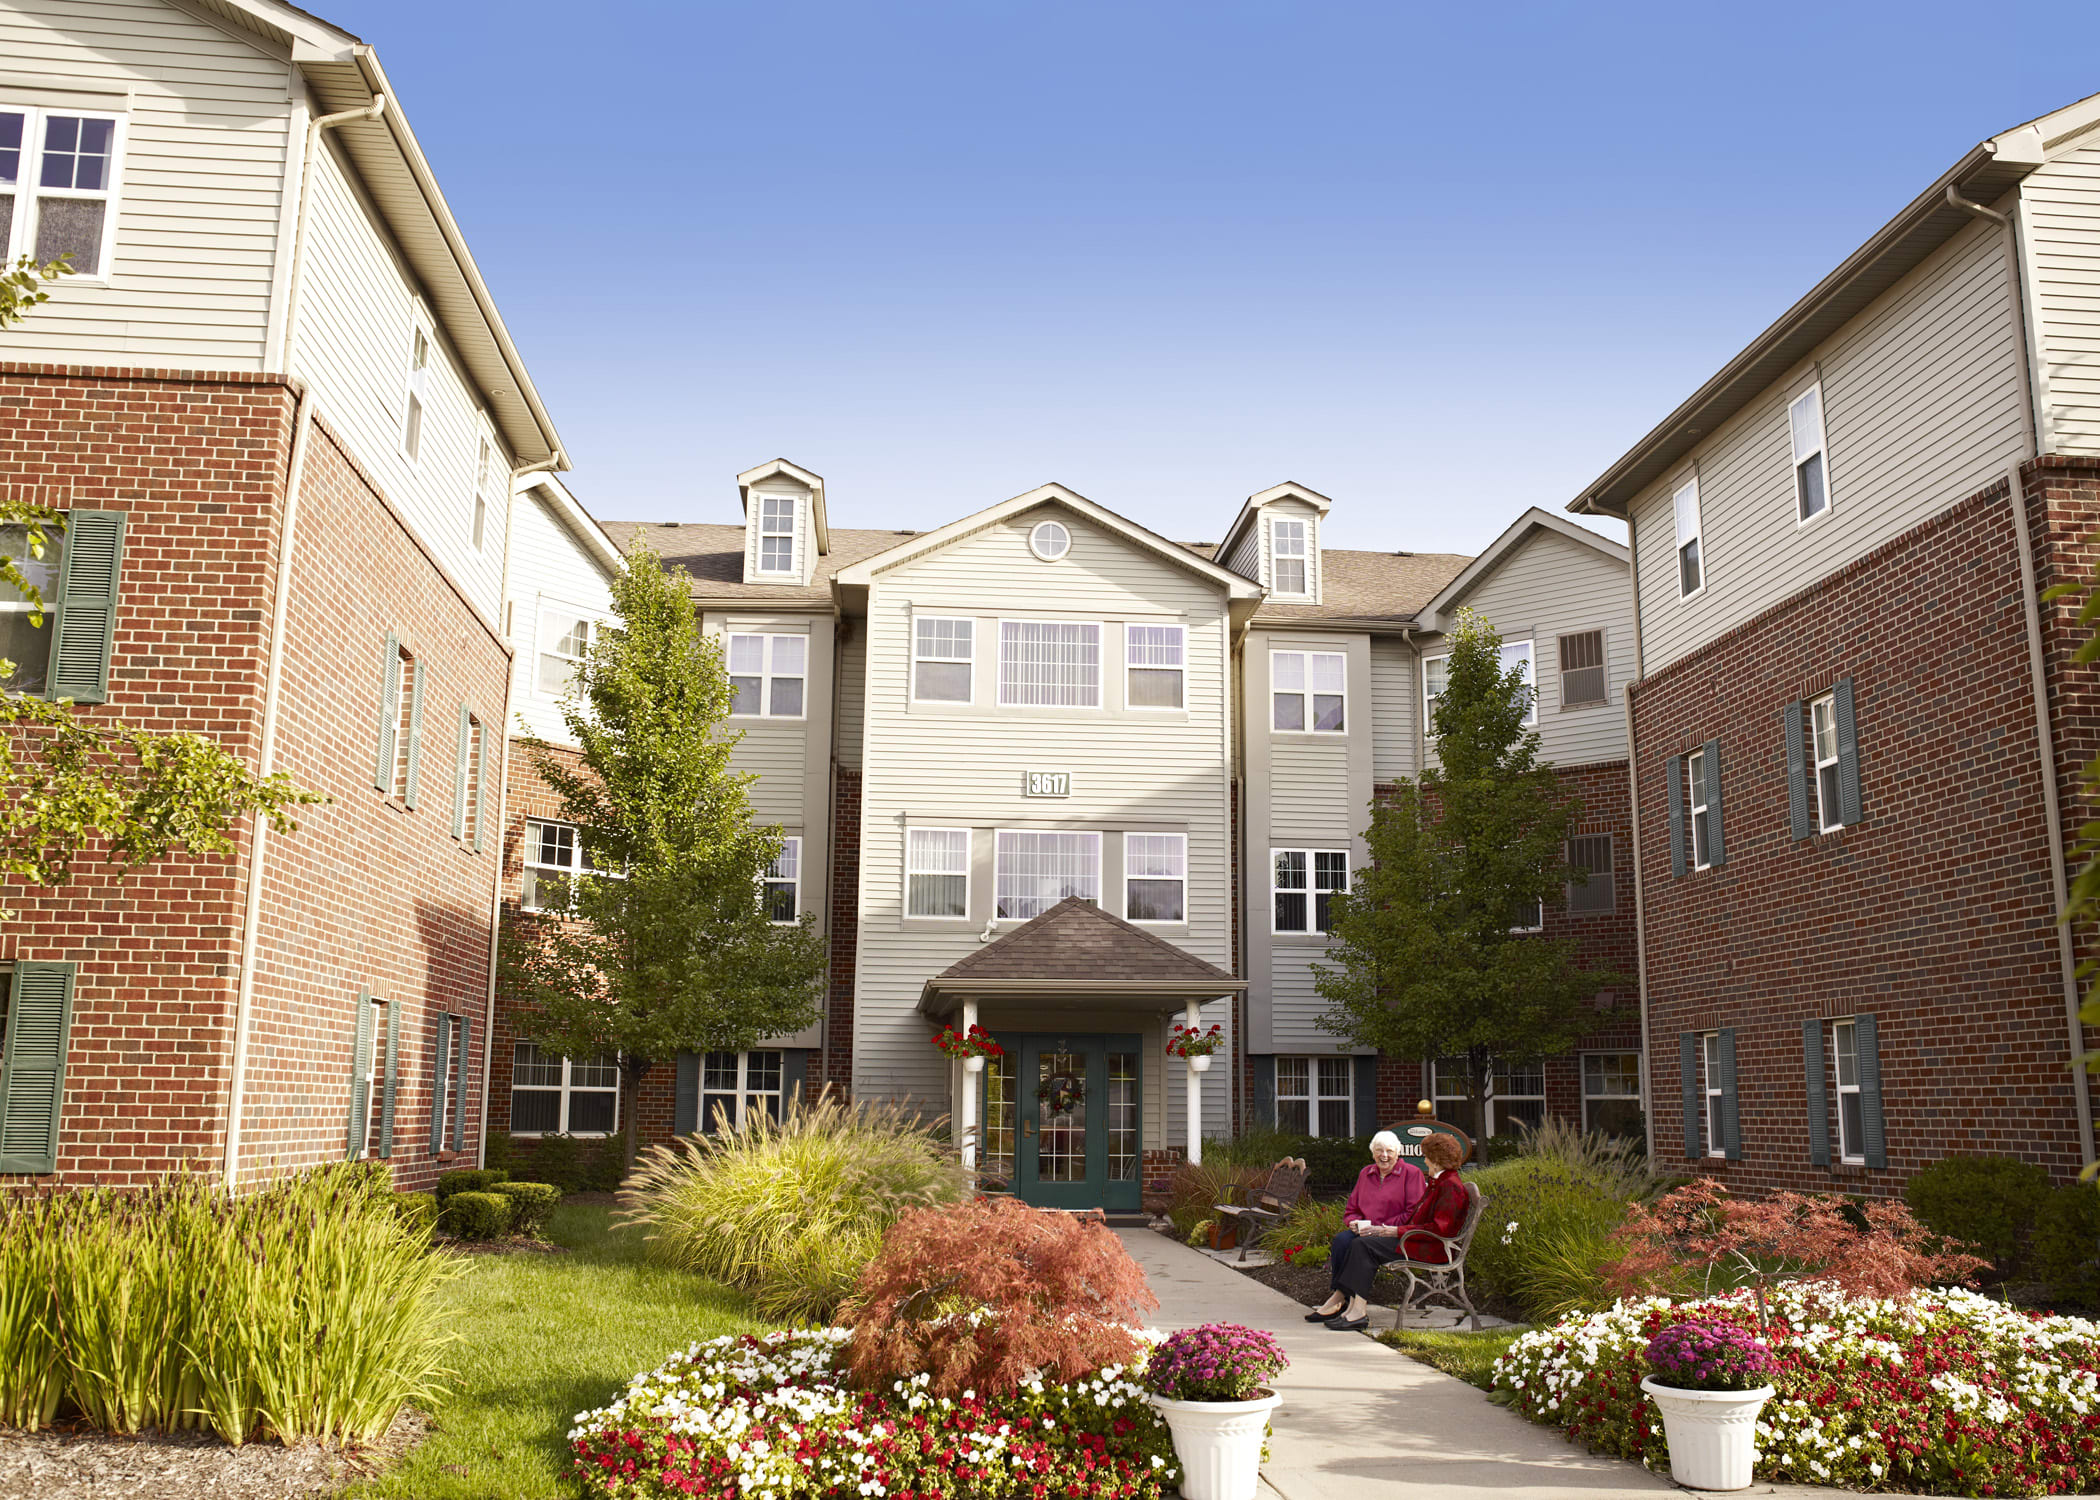 Photo 1 of American House Village Senior Living